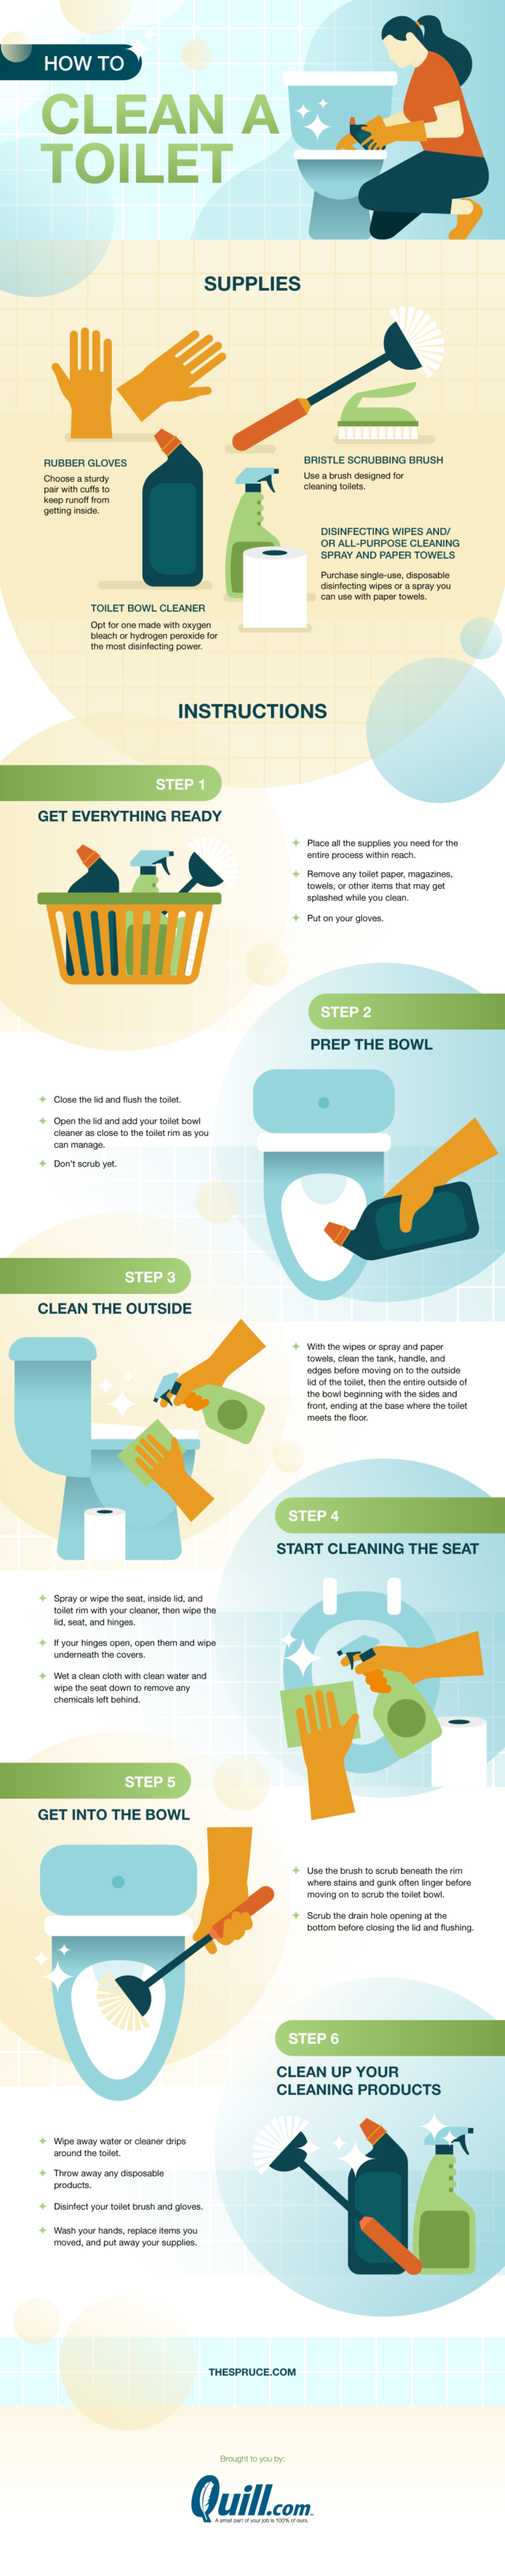 Here's exactly how to clean a toilet